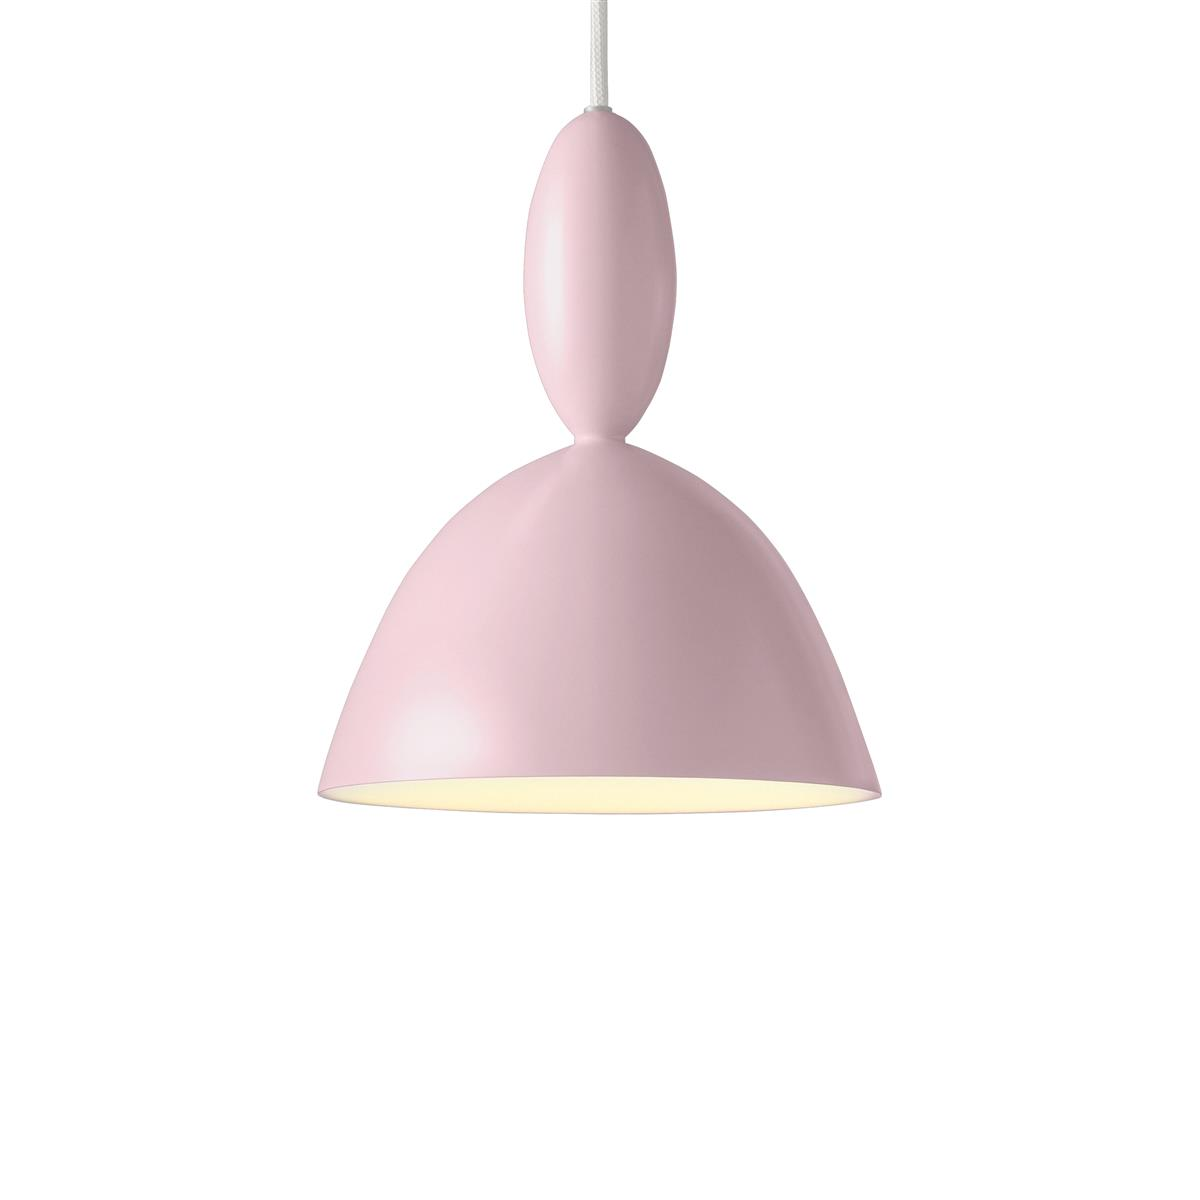 Mhy Pendant Lamp - Rose